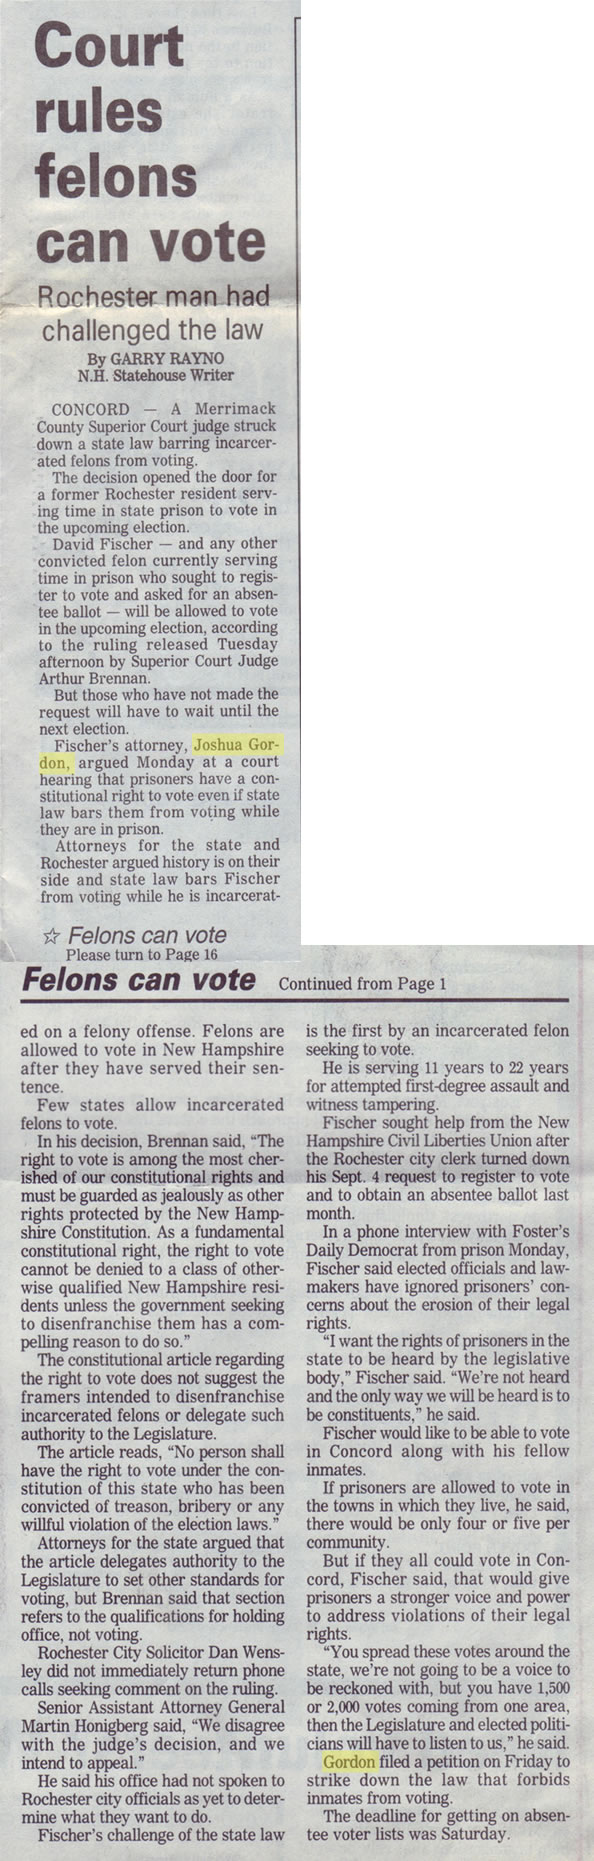 Court rules felons can vote